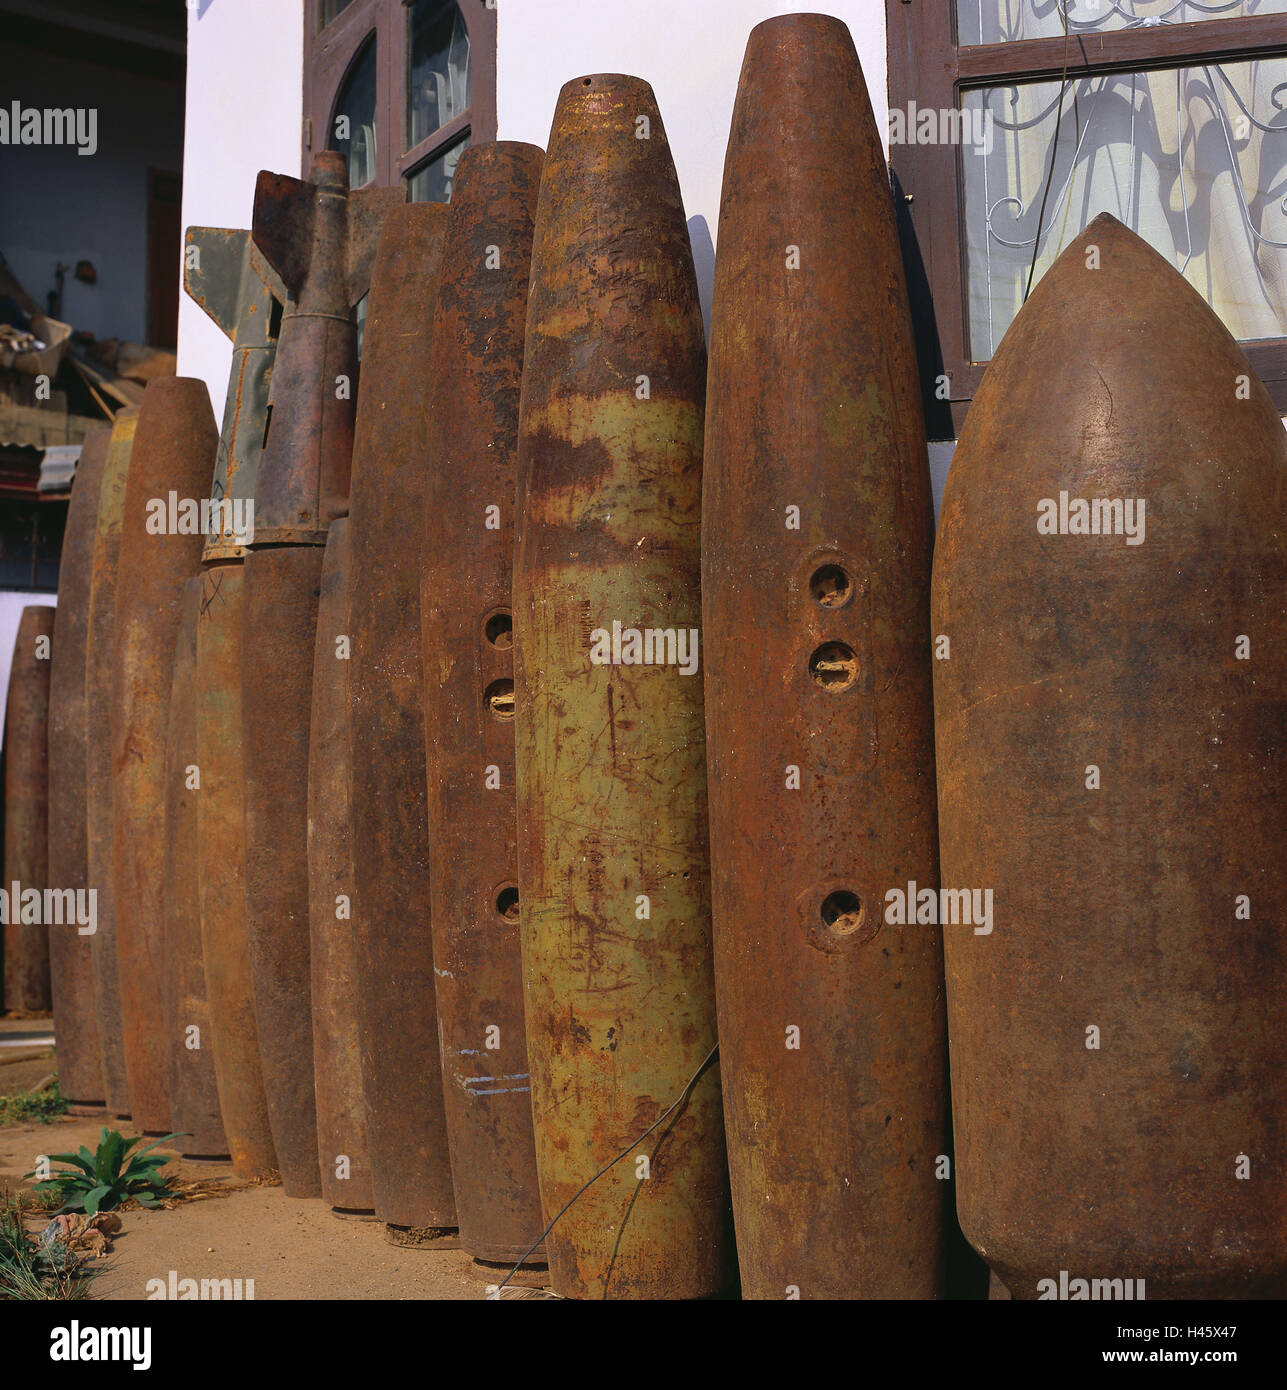 Laos, Xieng Khouang, Phonsavan, bombs, rusts, Asia, South-East Asia, place of interest, recollection, war, weapons, - Stock Image